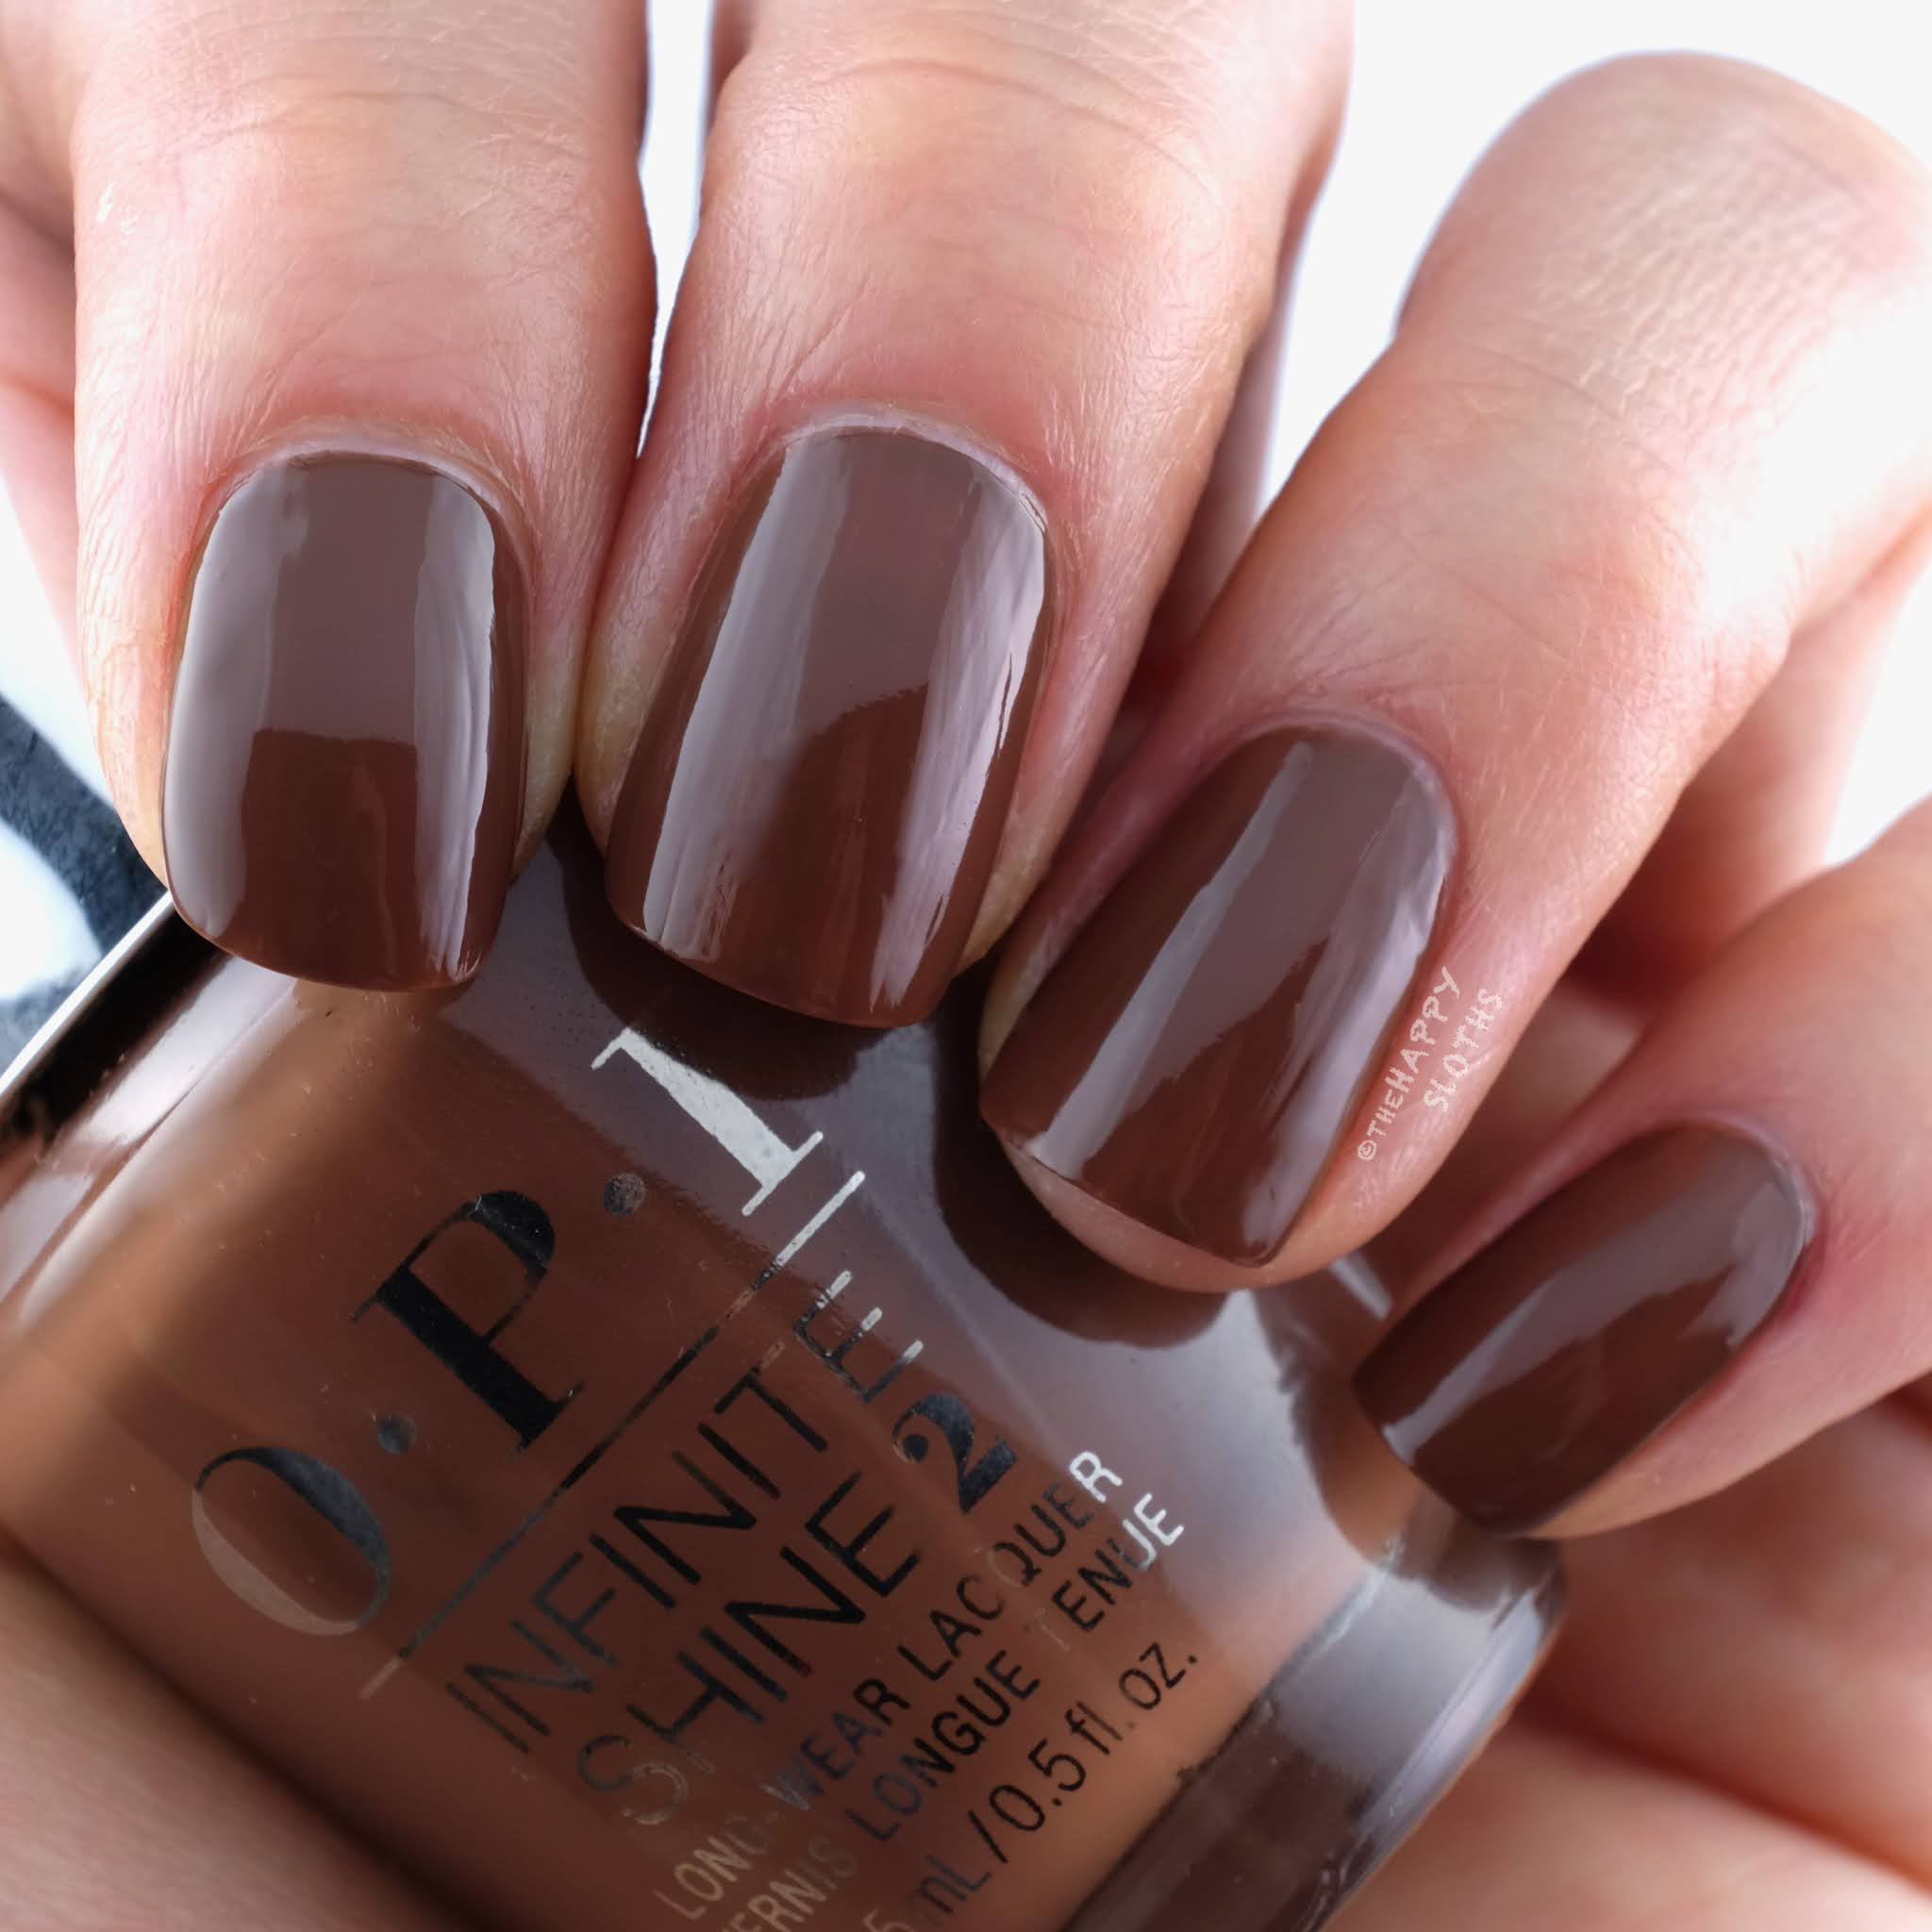 OPI Summer 2021 Malibu Collection   Cliffside Karaoke: Review and Swatches